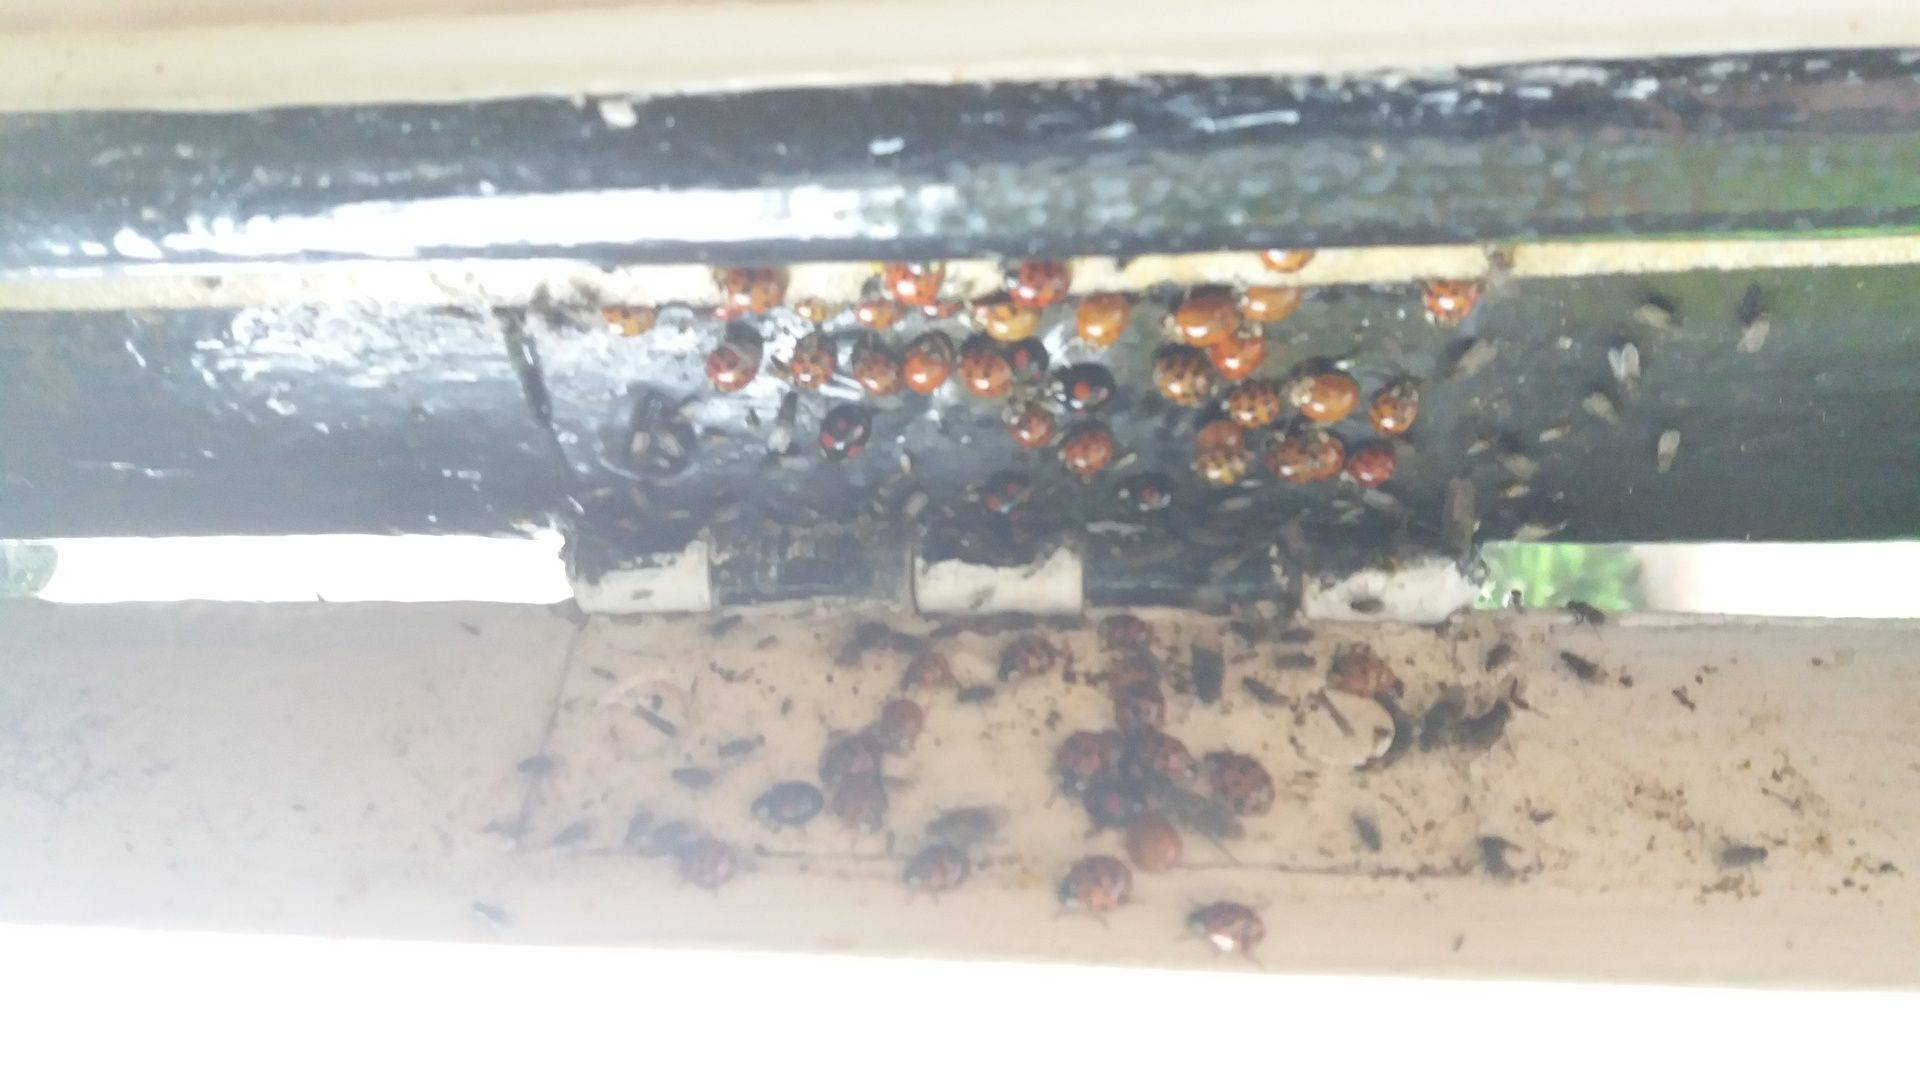 treating a bees nest in Ipswich